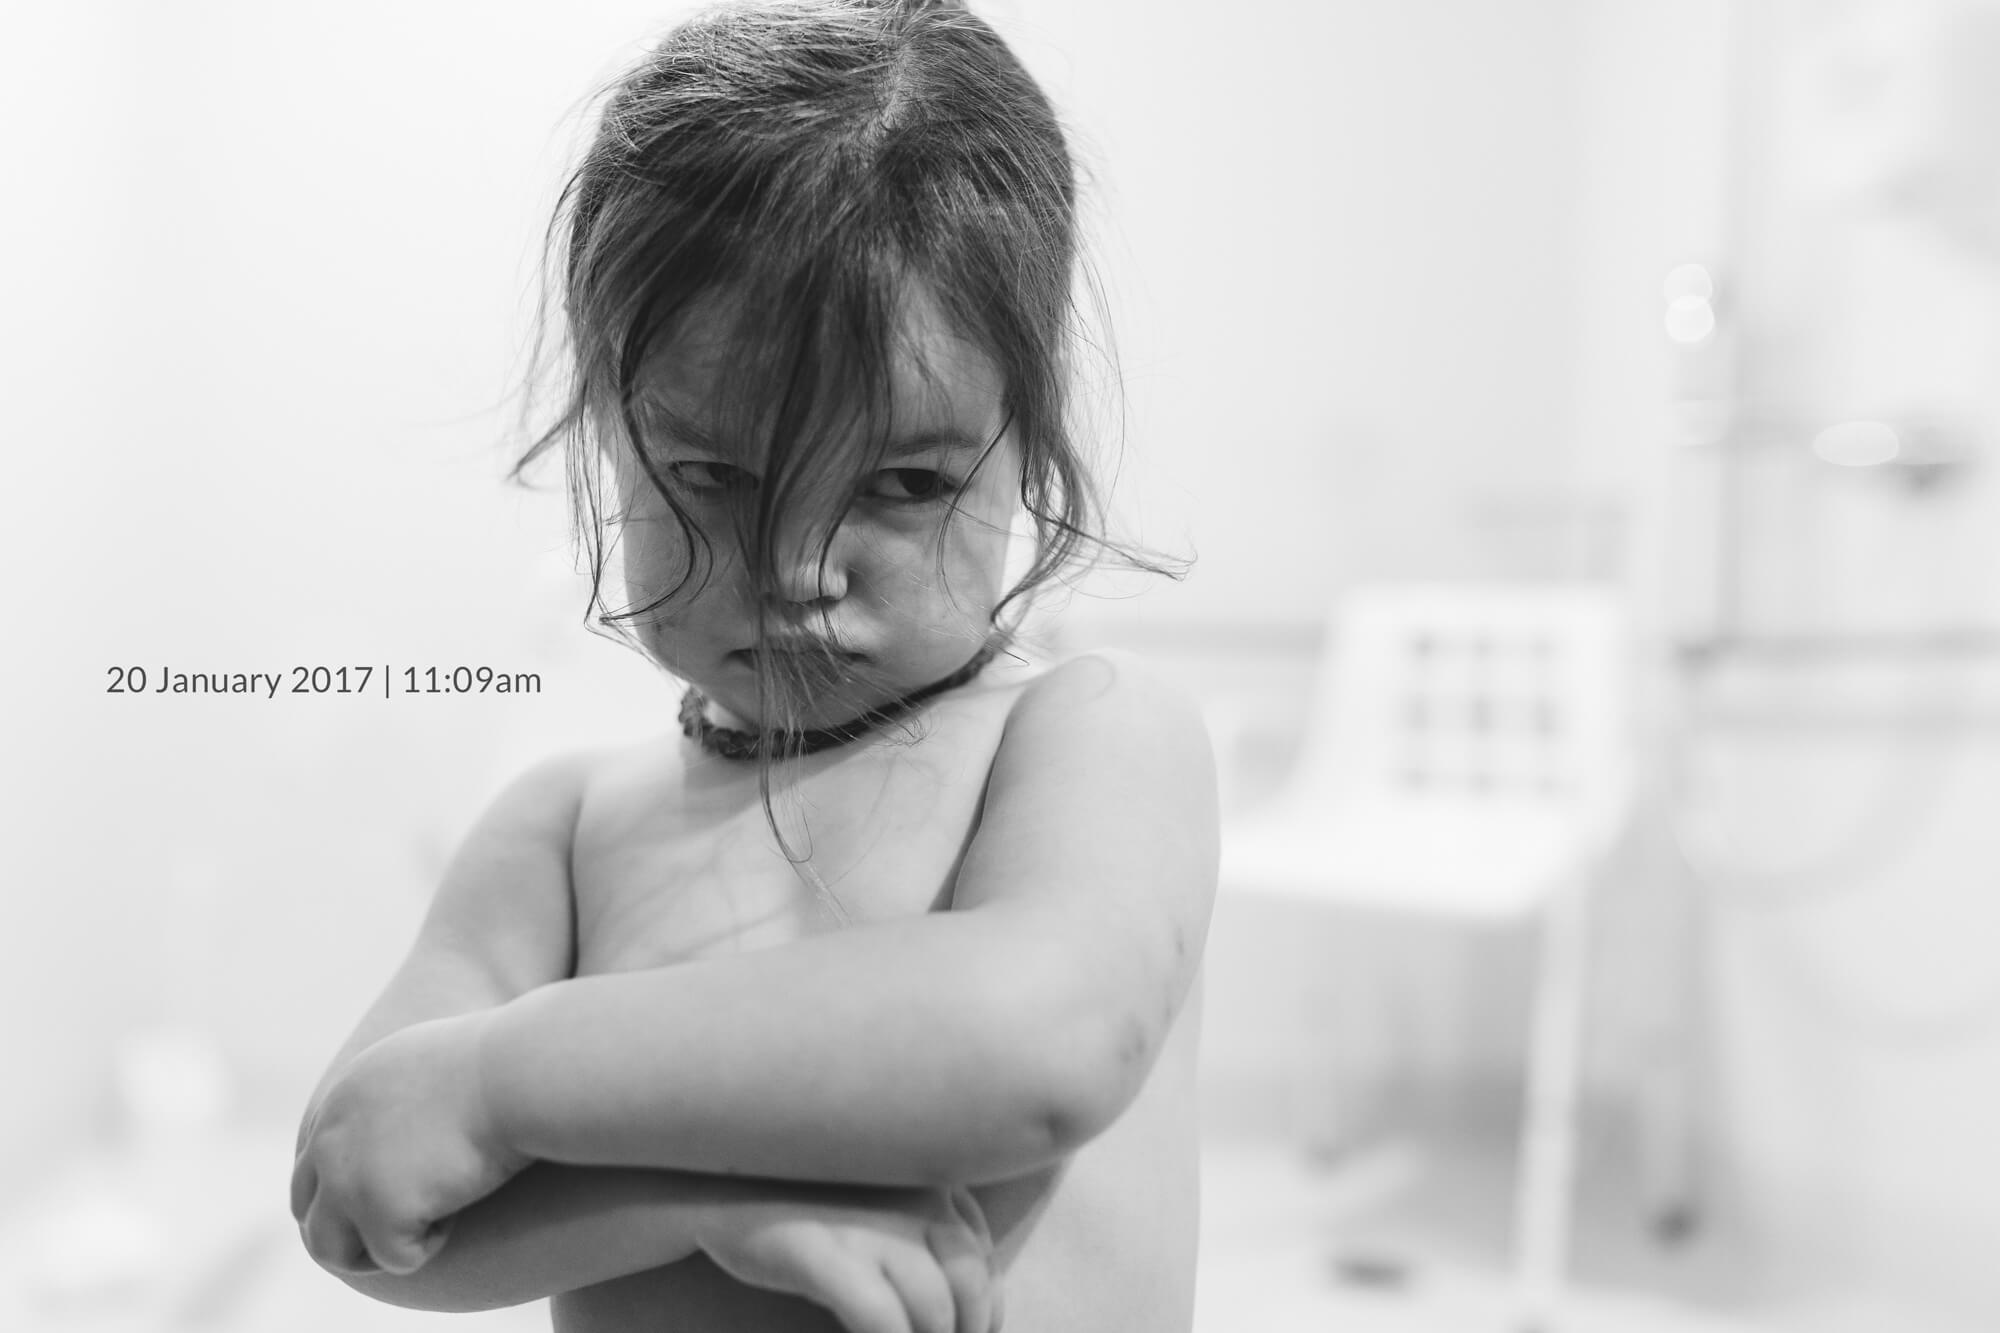 Melbourne child photographer. Black and white portrait of toddler looking sad.